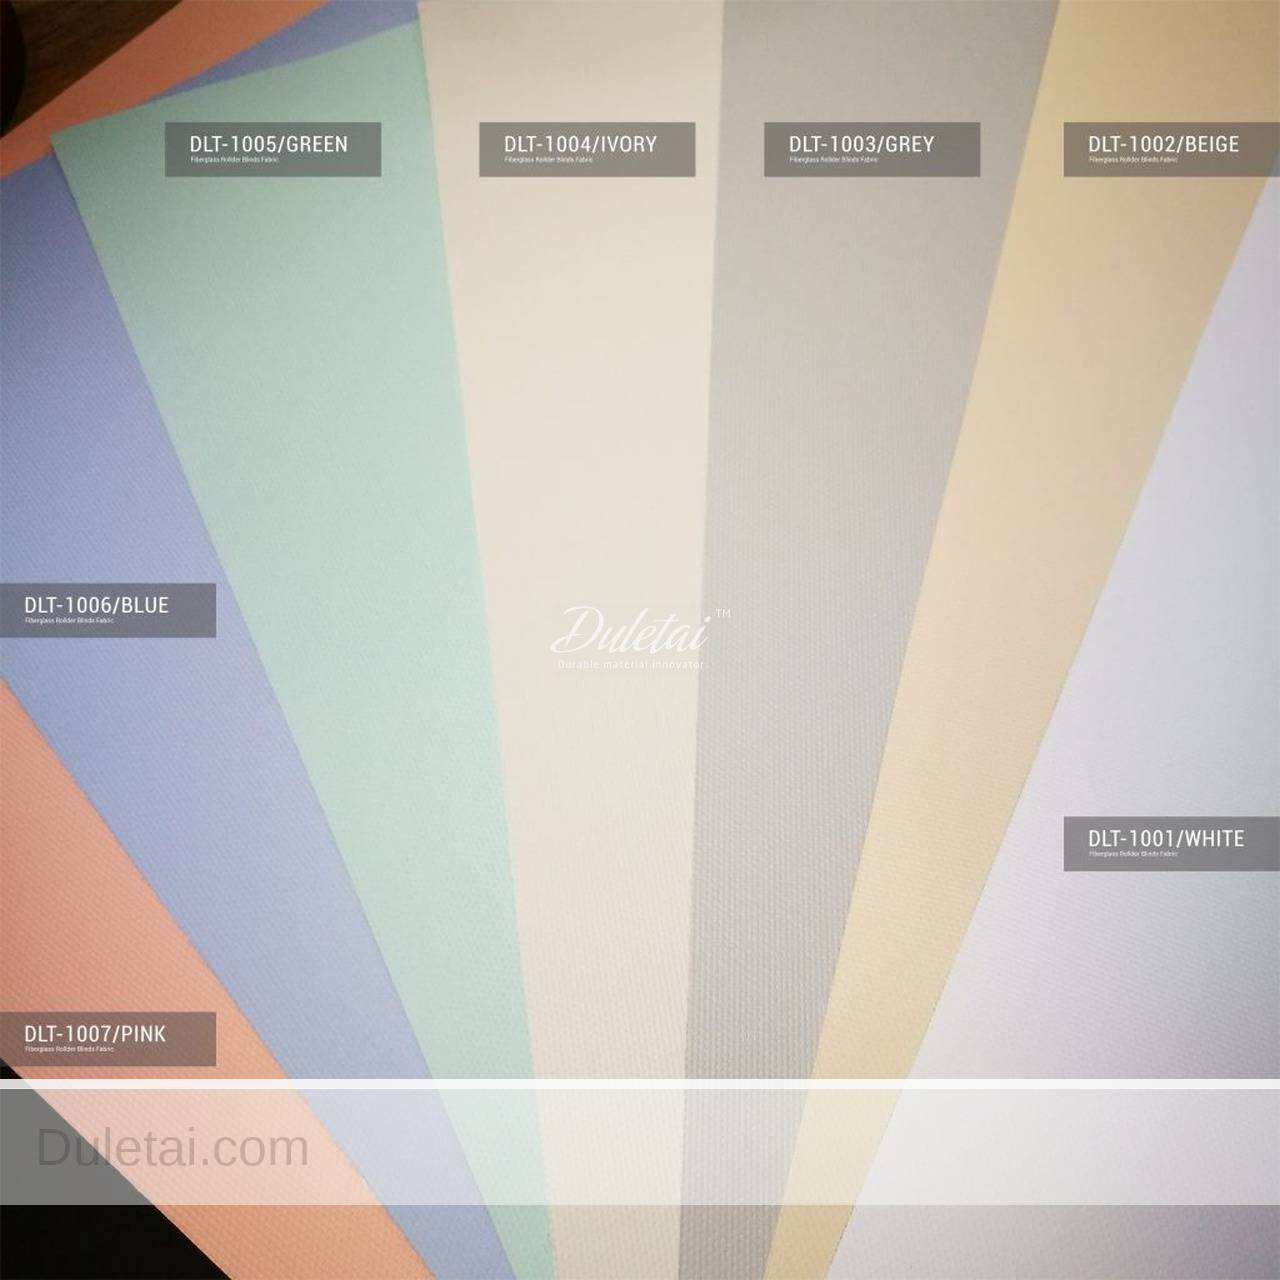 fiberglass roller blinds fabric